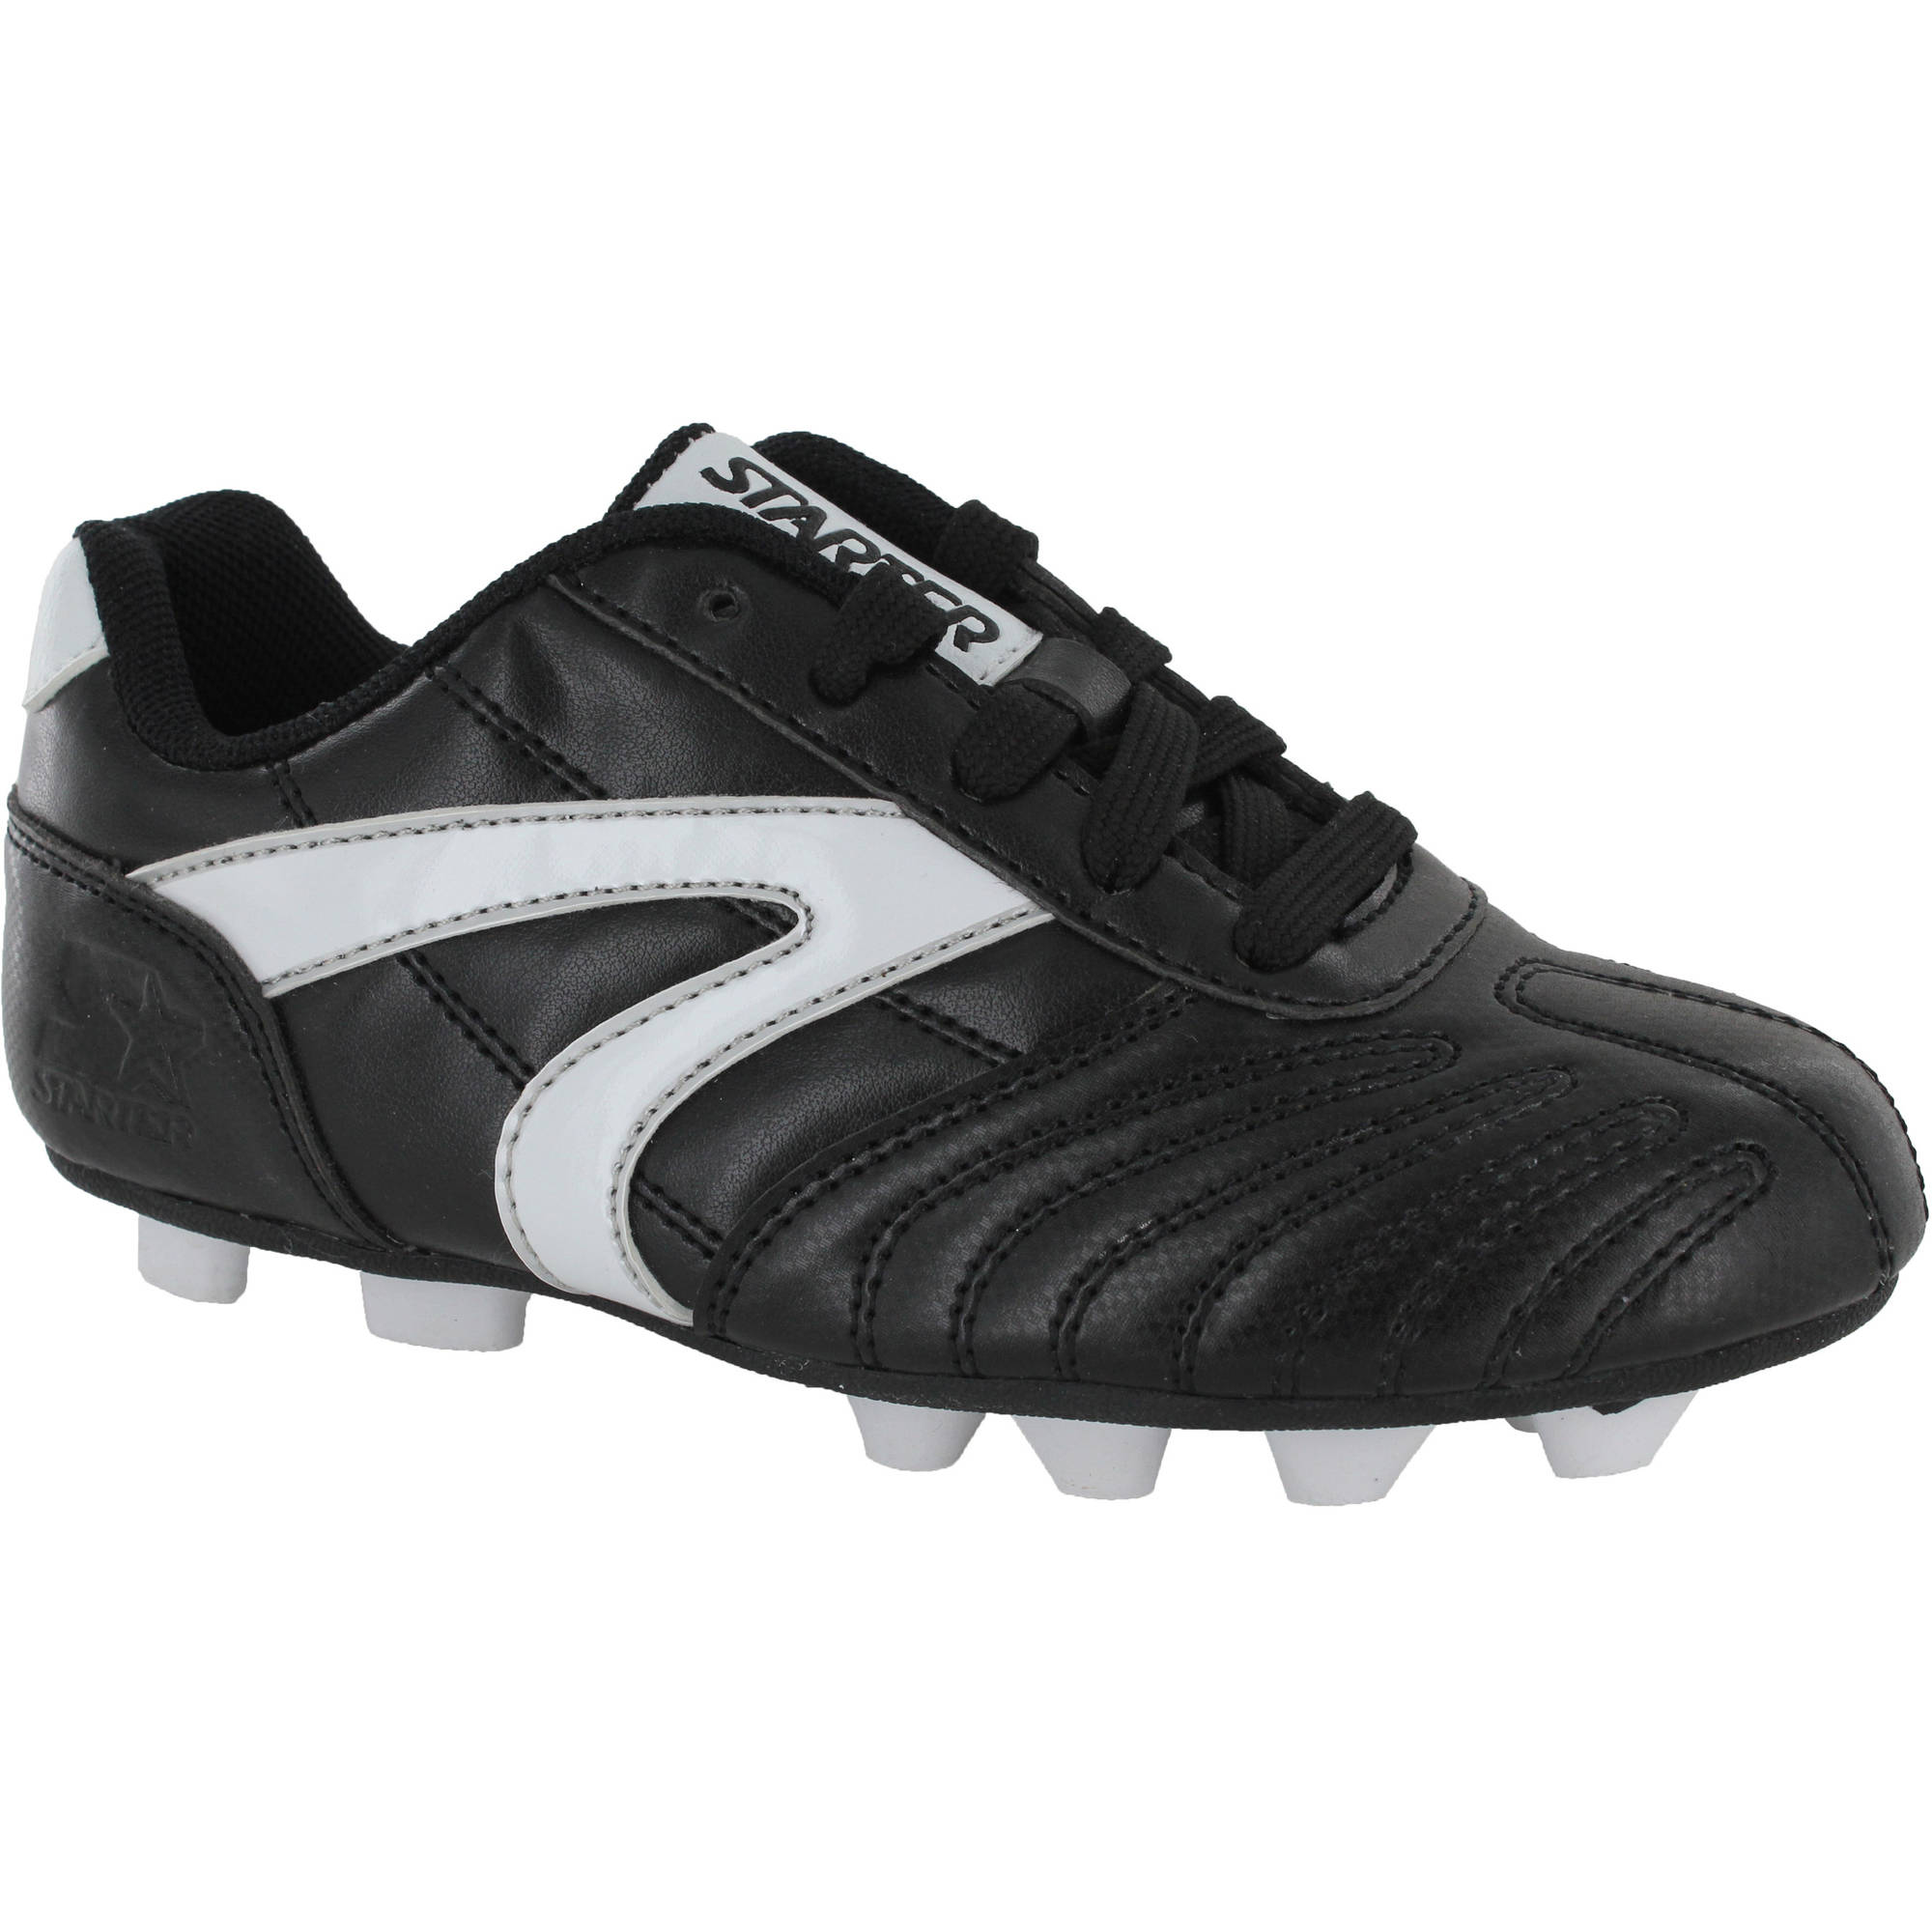 Starter Boys\u0027 Athletic Sidewinder Soccer Cleat